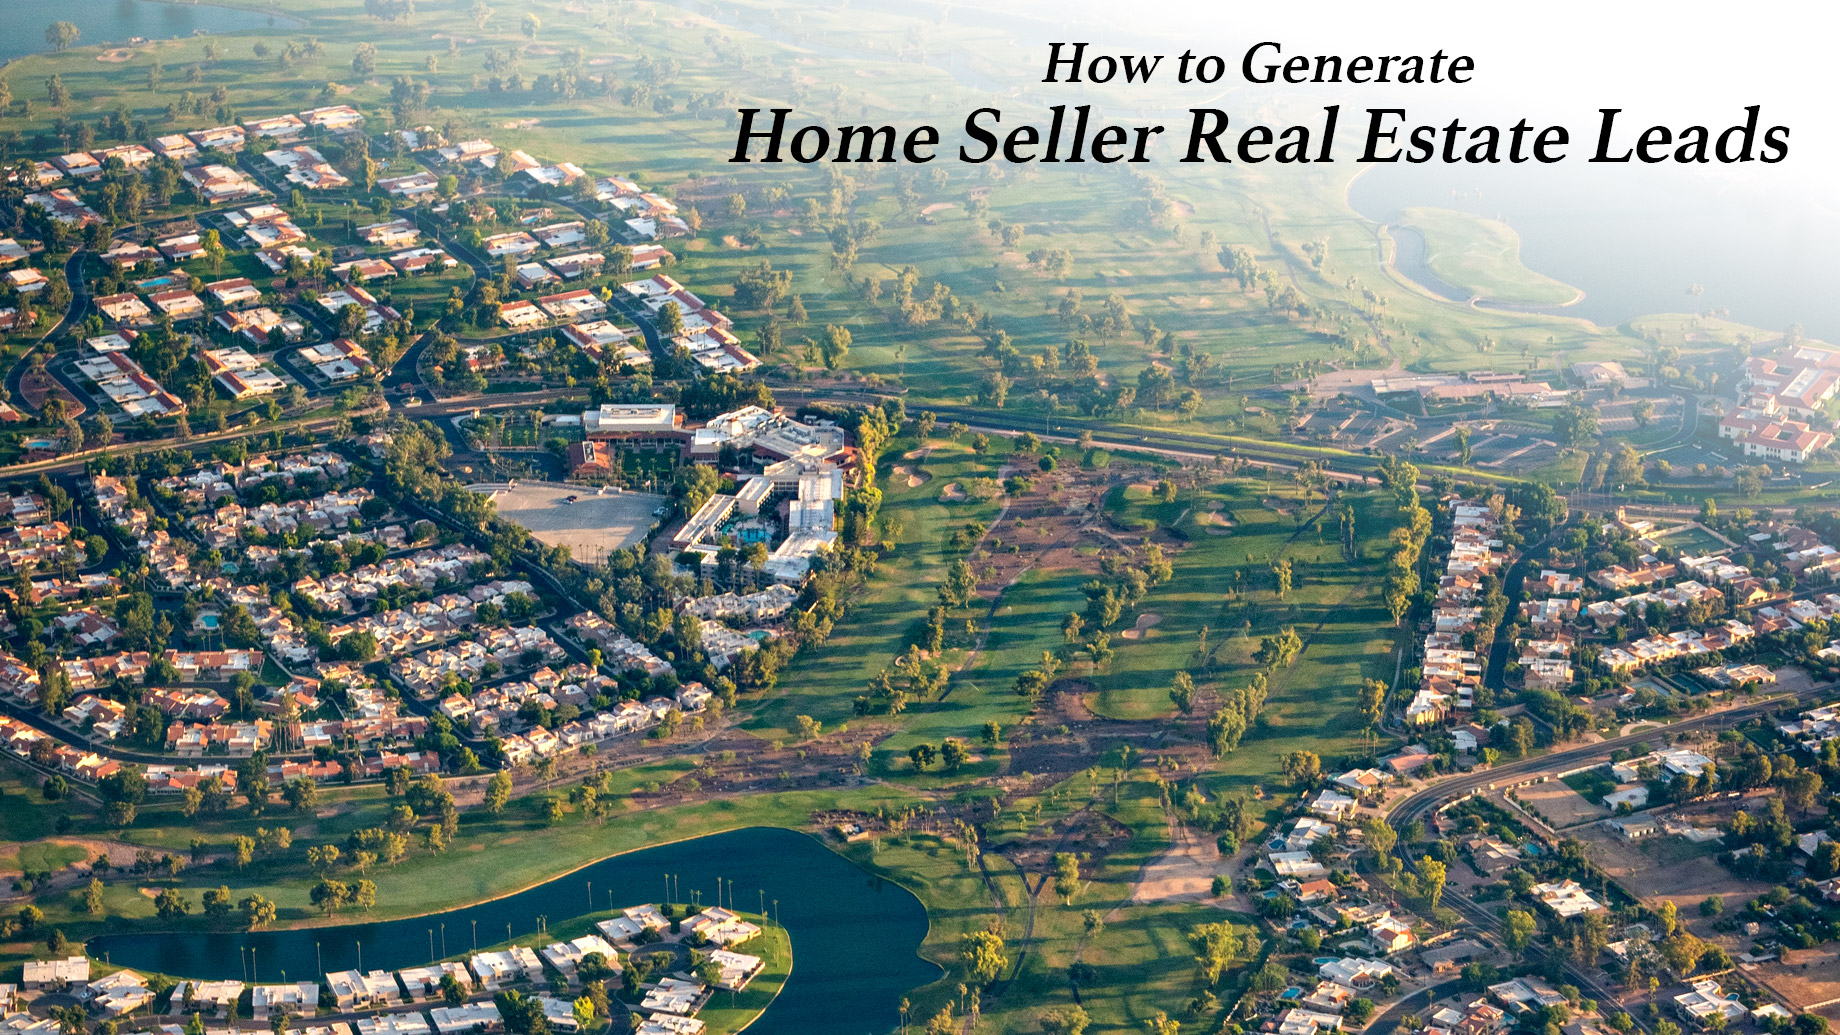 How to Generate Home Seller Real Estate Leads